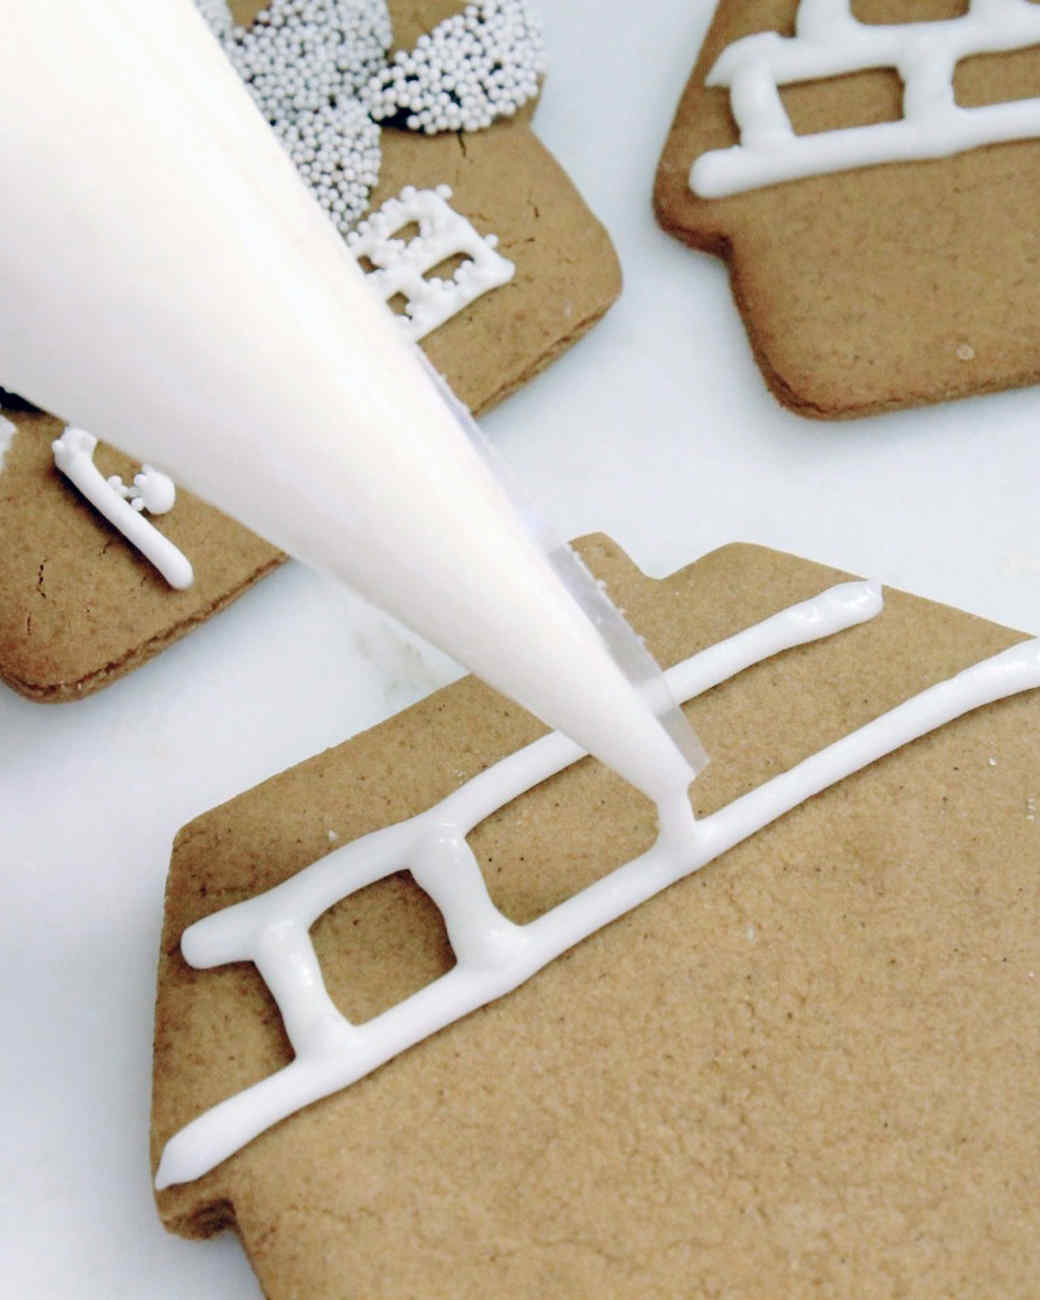 gingerbread-royal-icing-jennysteffens-1115.jpg